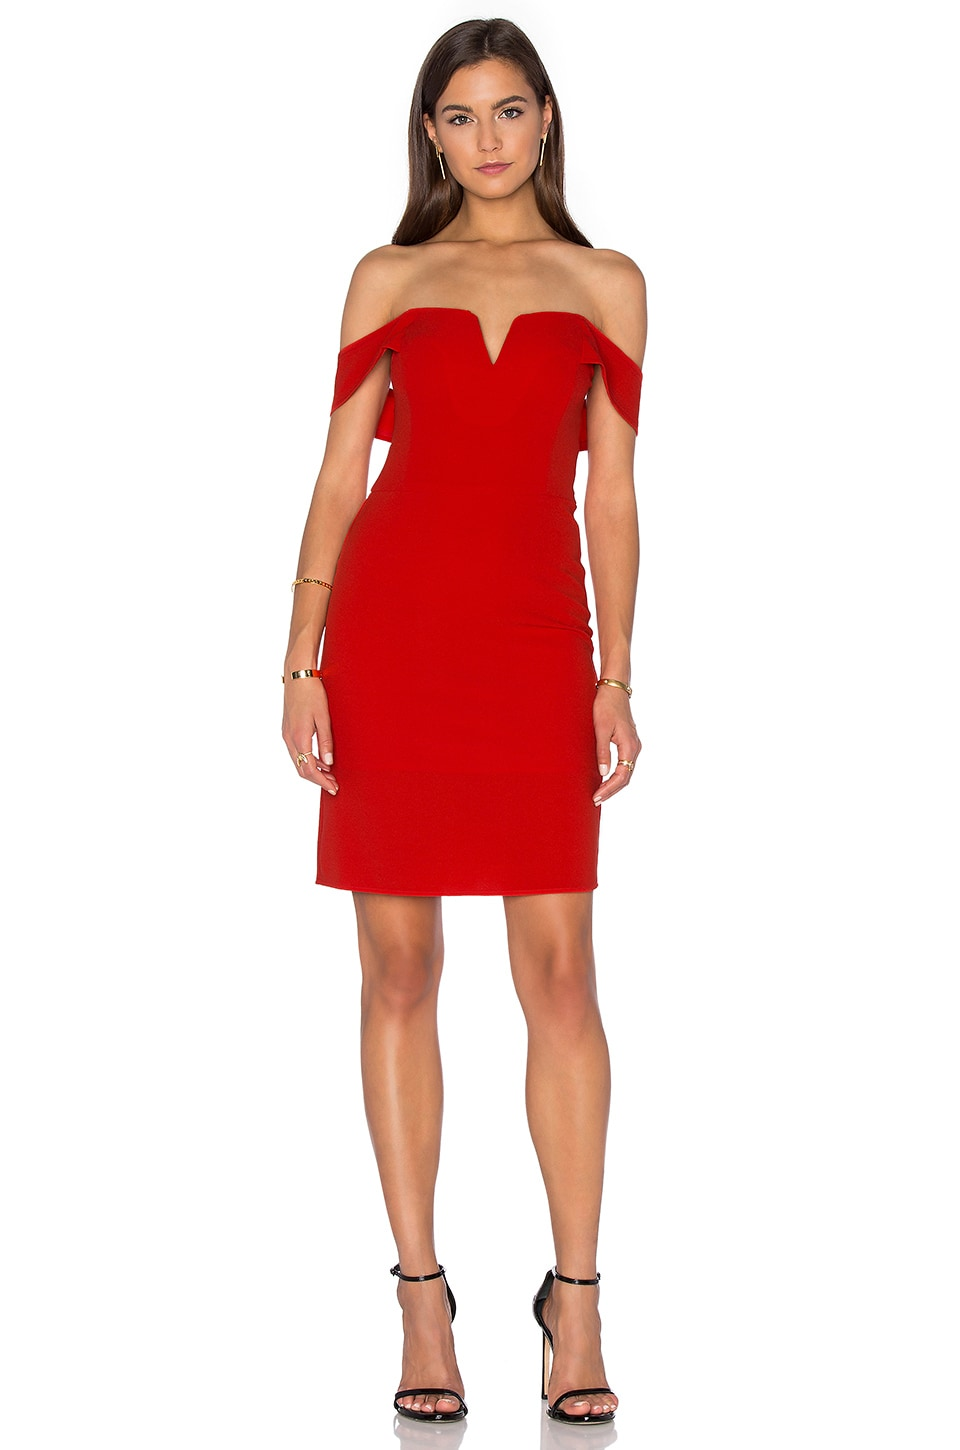 J.O.A. Off The Shoulder Mini Dress in Red